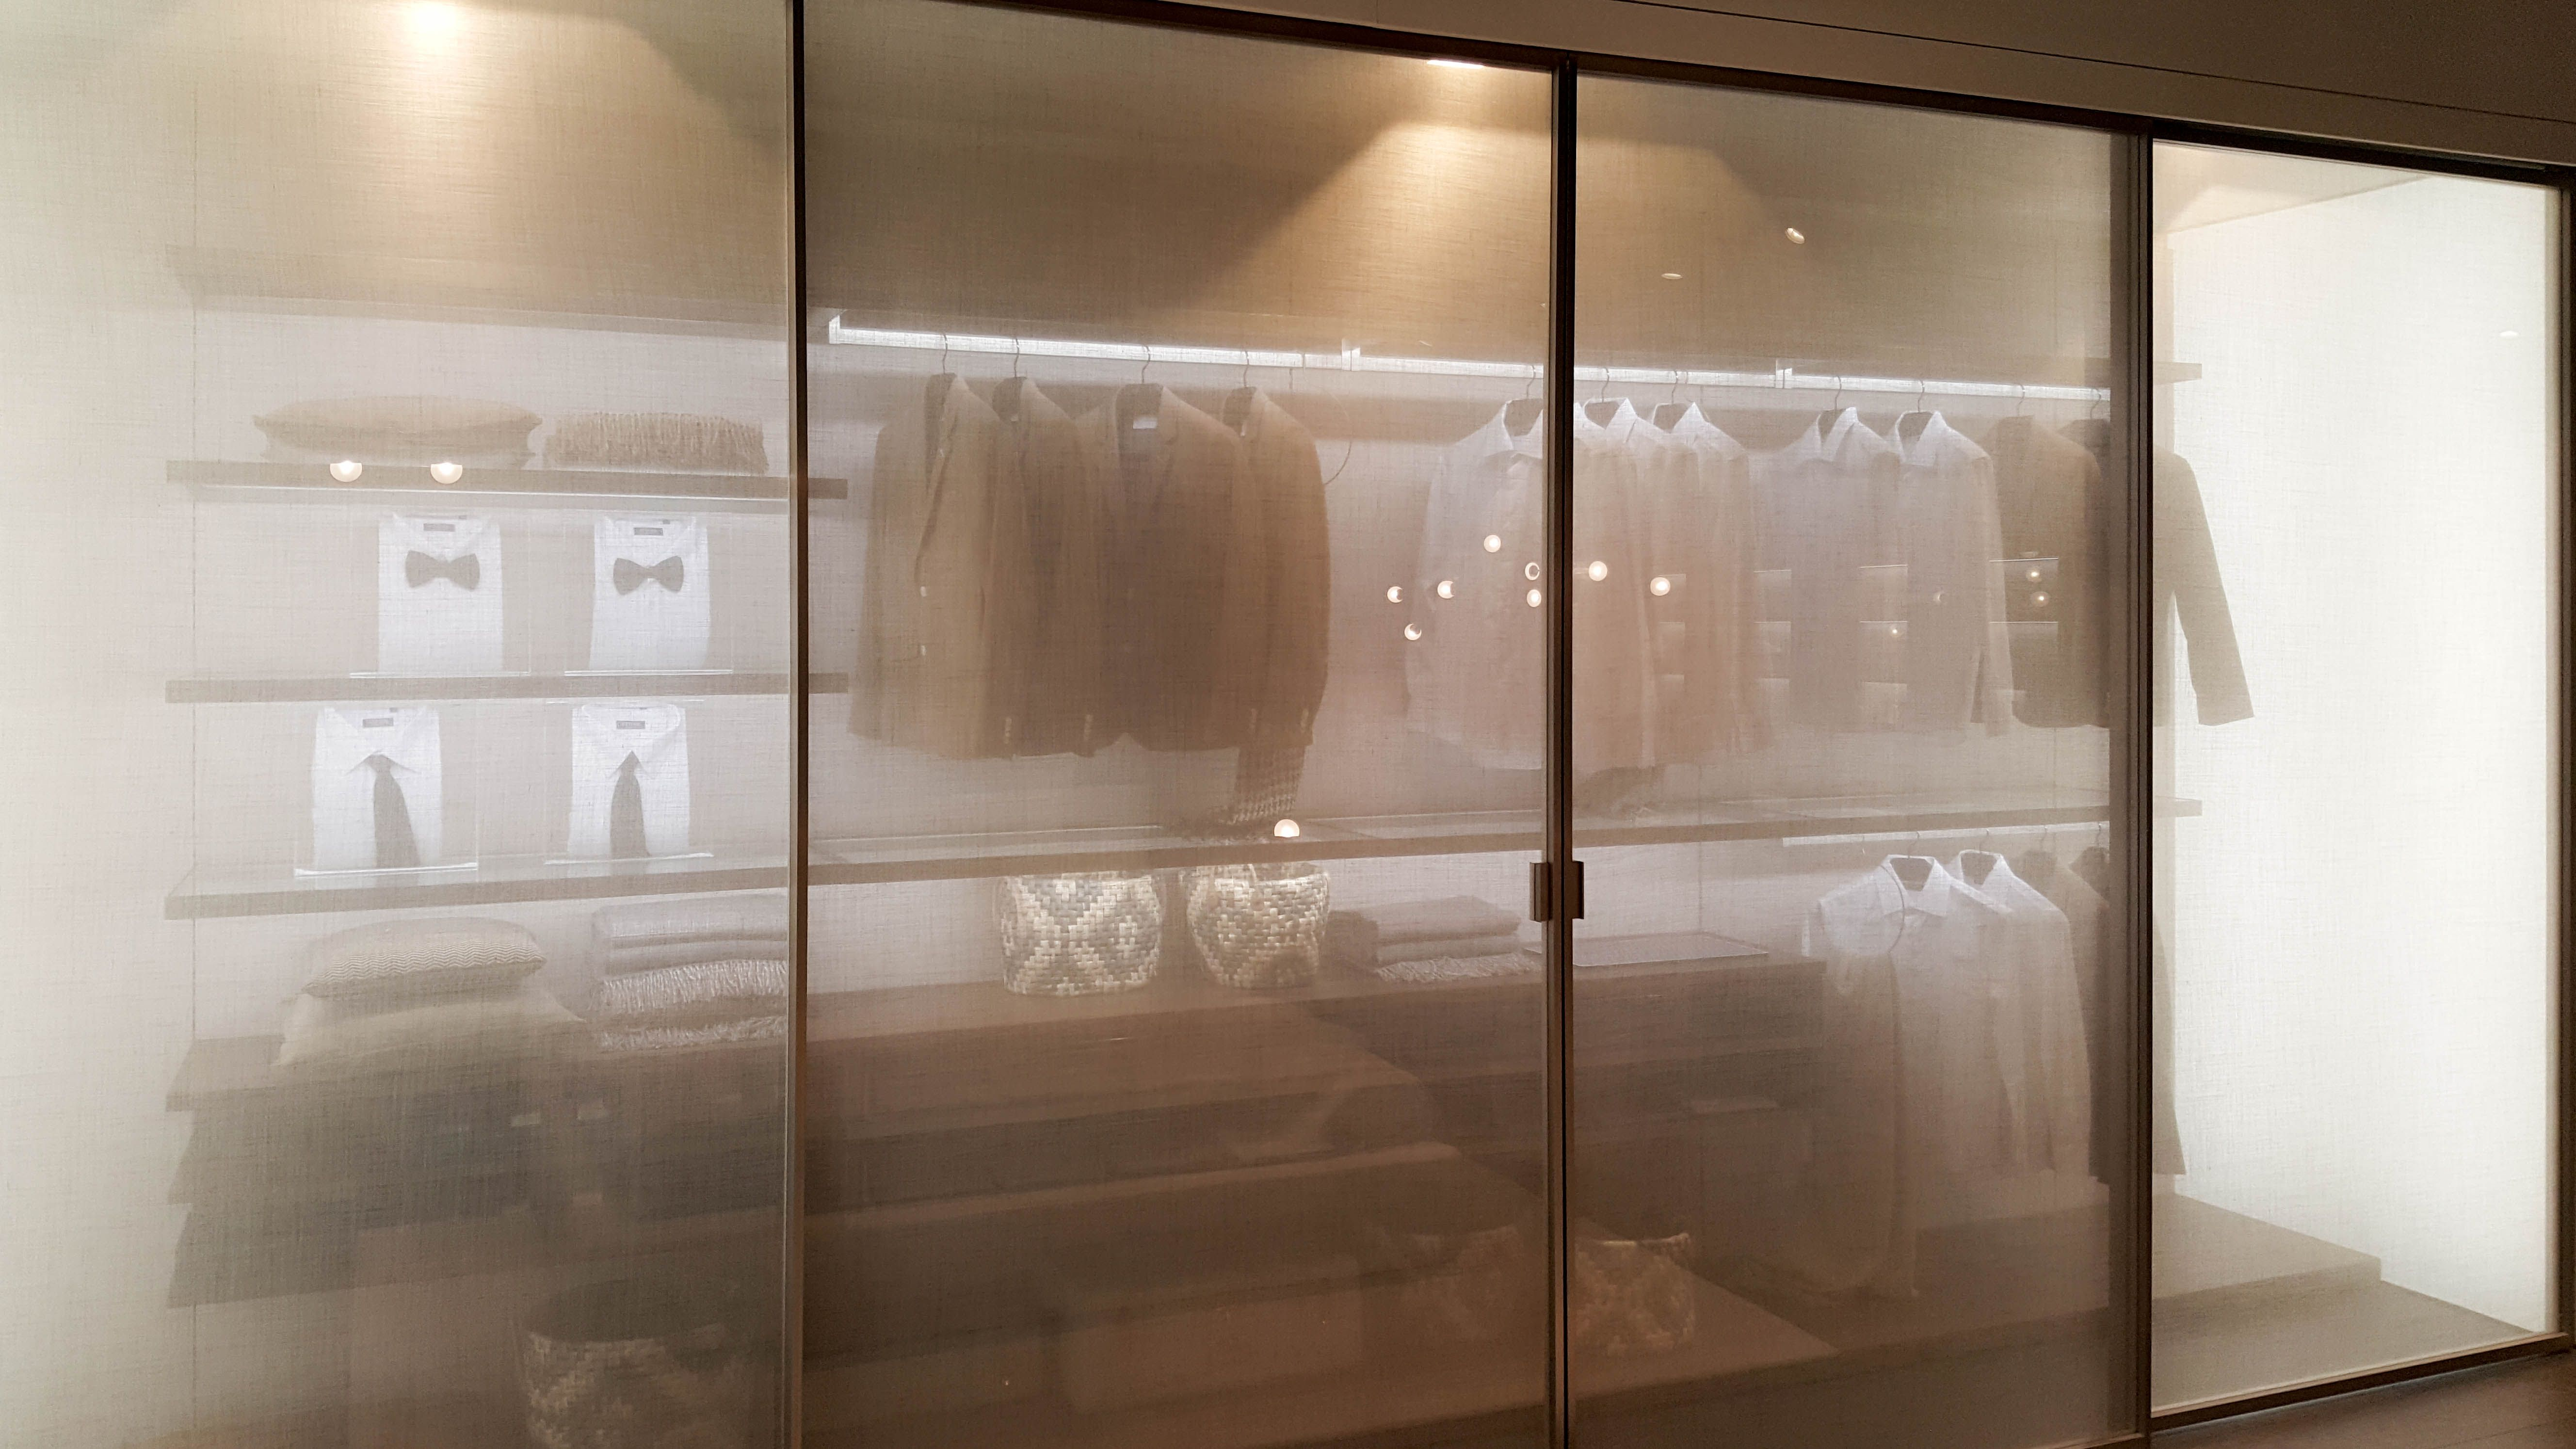 drawer design main in closets i to hanging saw drills double the built look achieve shelving you img closet above units makeover frills and day another